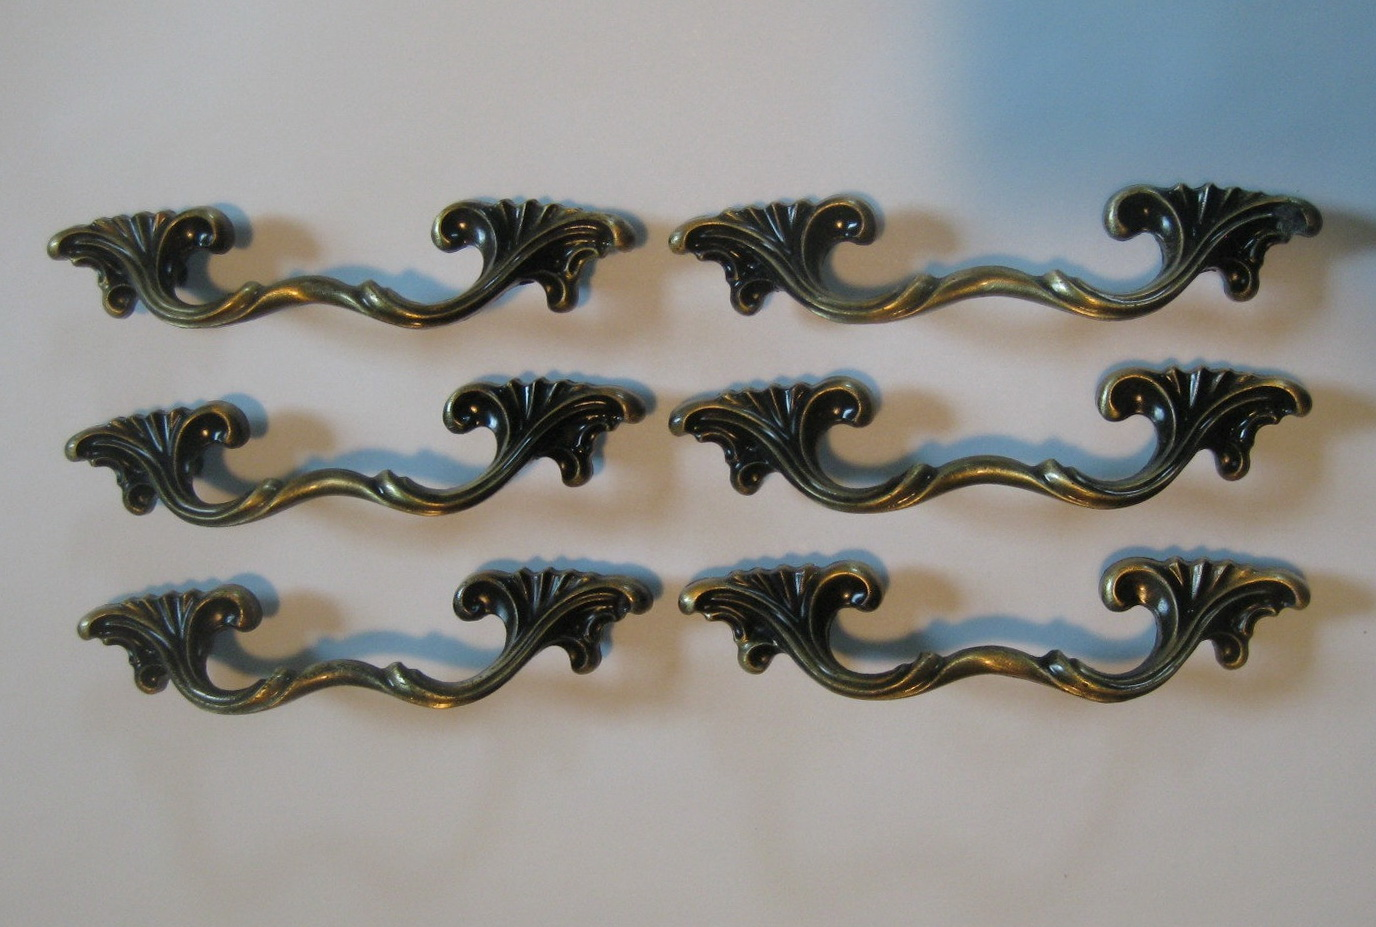 French Provincial Dresser Drawer Pulls